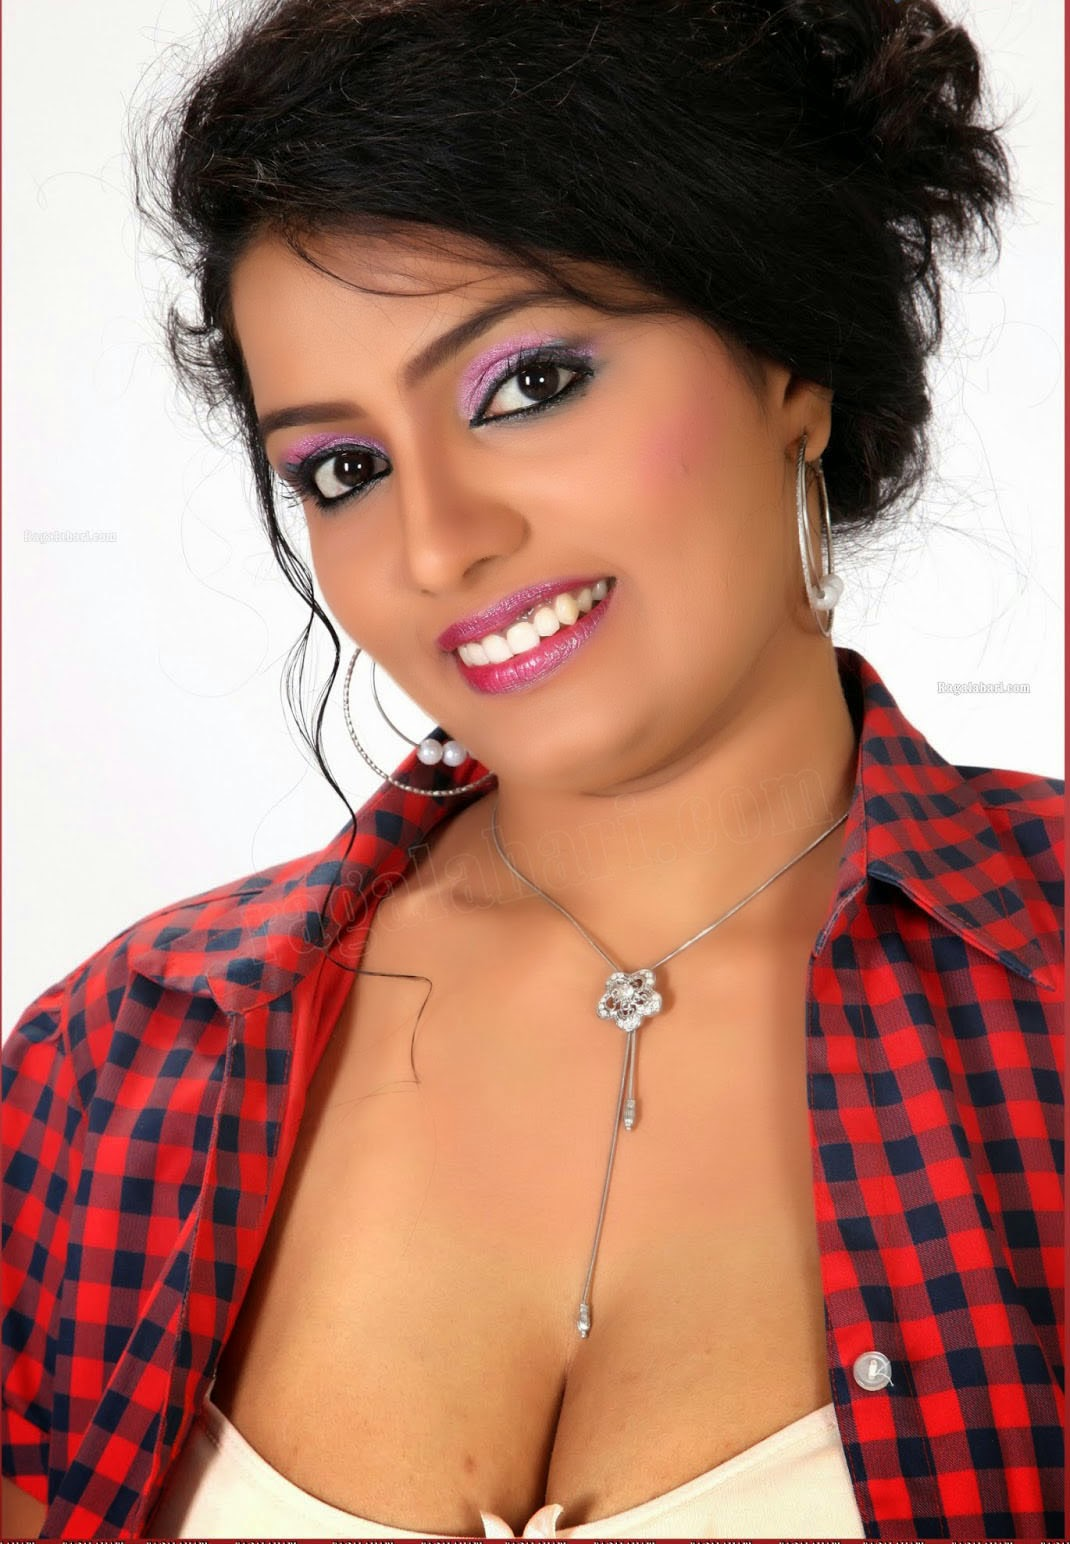 indian wife hanimoon bech sexy photo